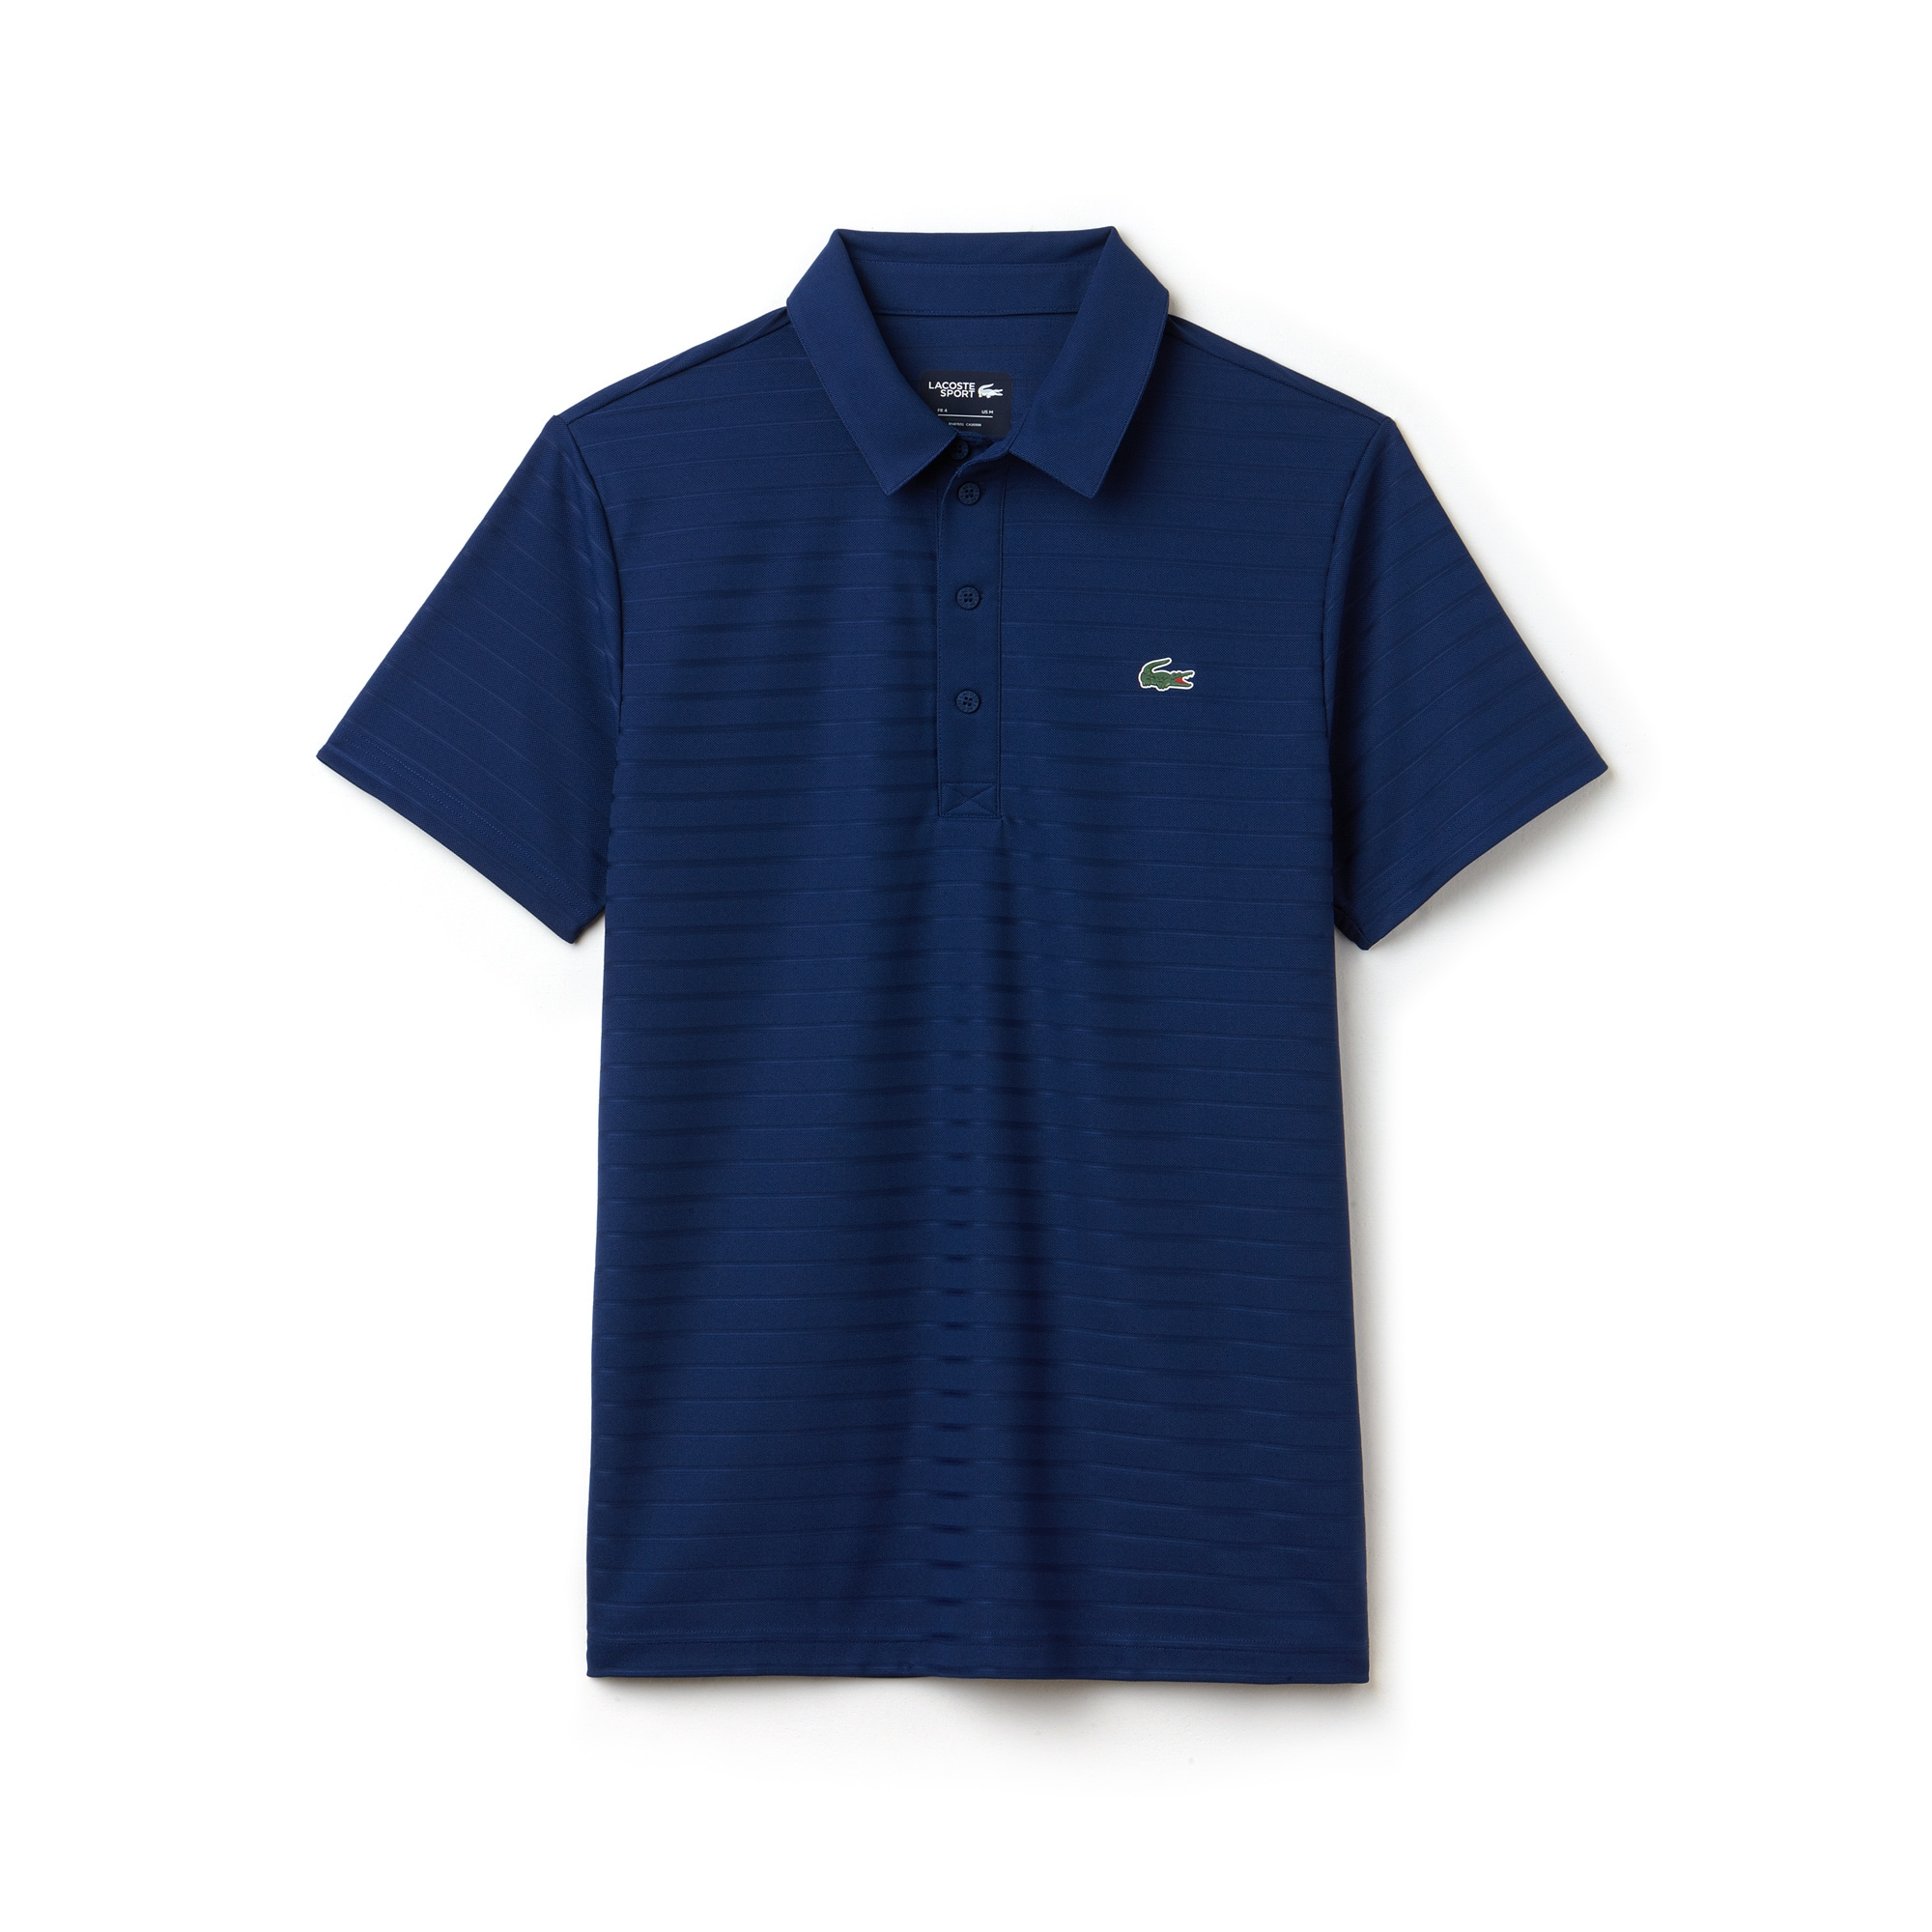 Lacoste - Herren-Funktions-Polo aus Jacquard-Jersey LACOSTE SPORT GOLF - 1